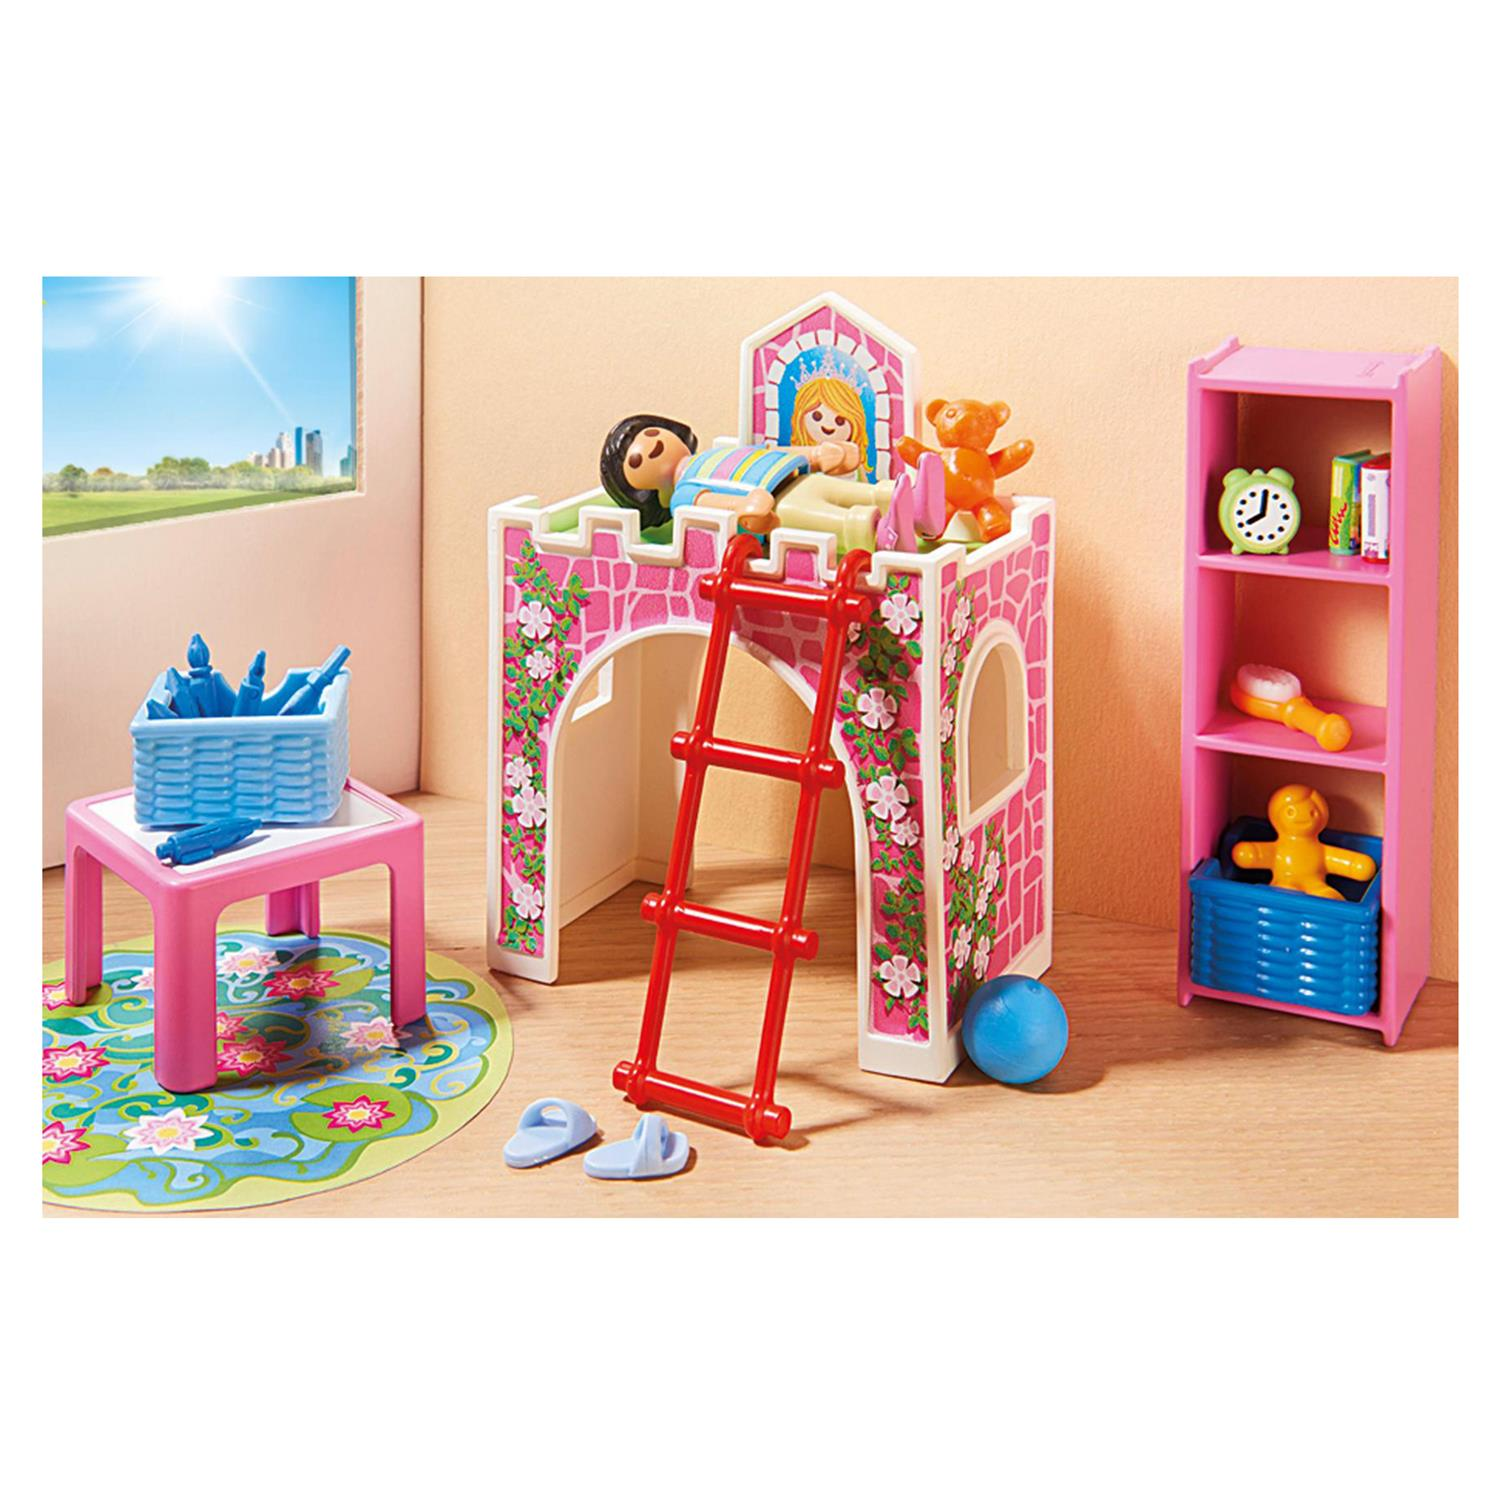 Playmobil 9270 fr hliches kinderzimmer for Kinderzimmer playmobil